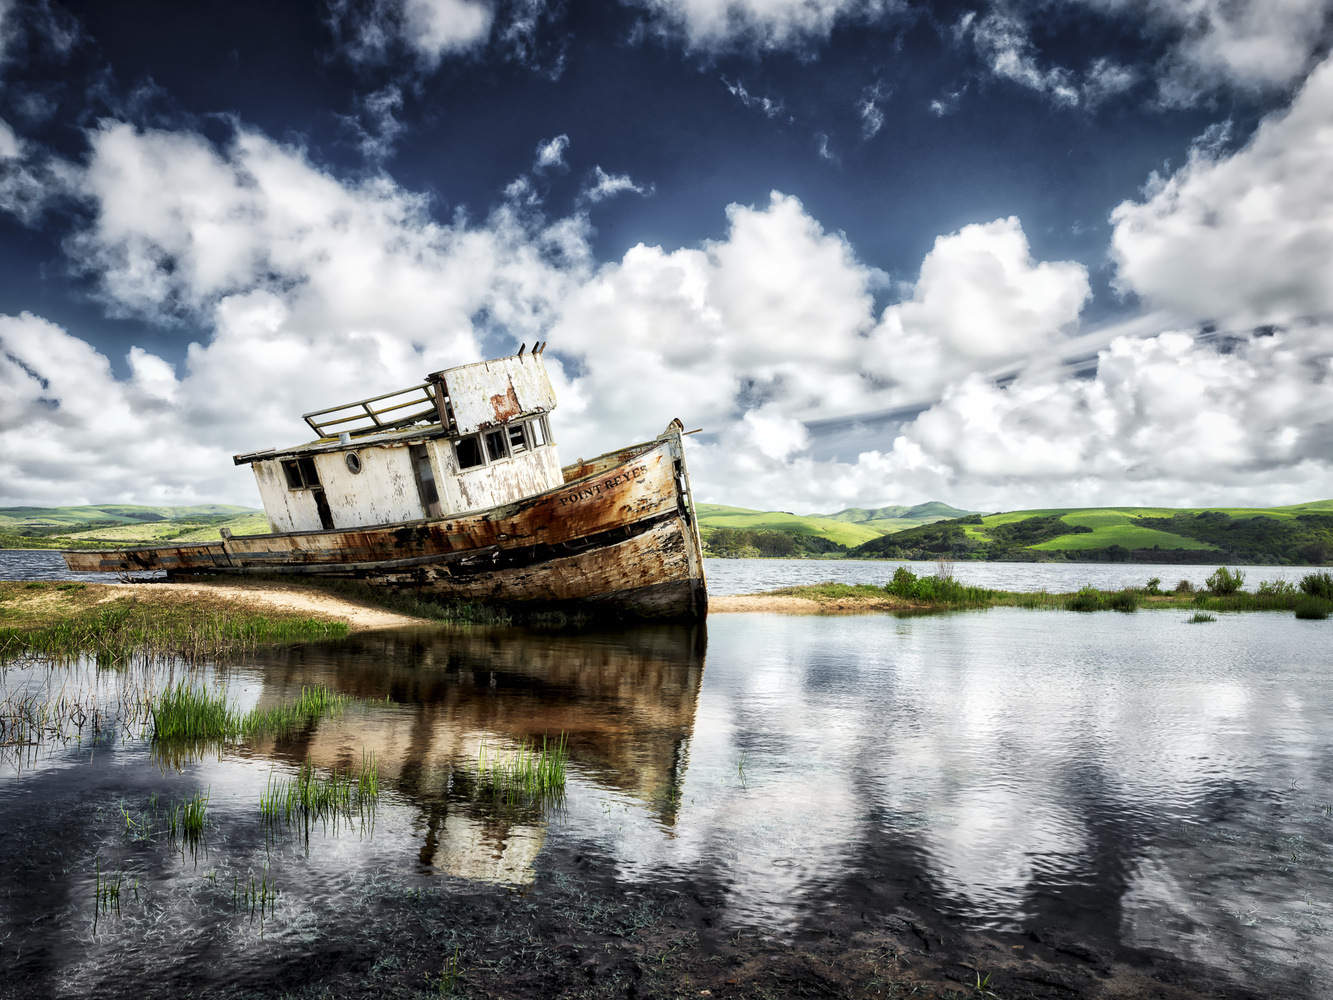 Point Reyes Shipwreck by Trey Amick